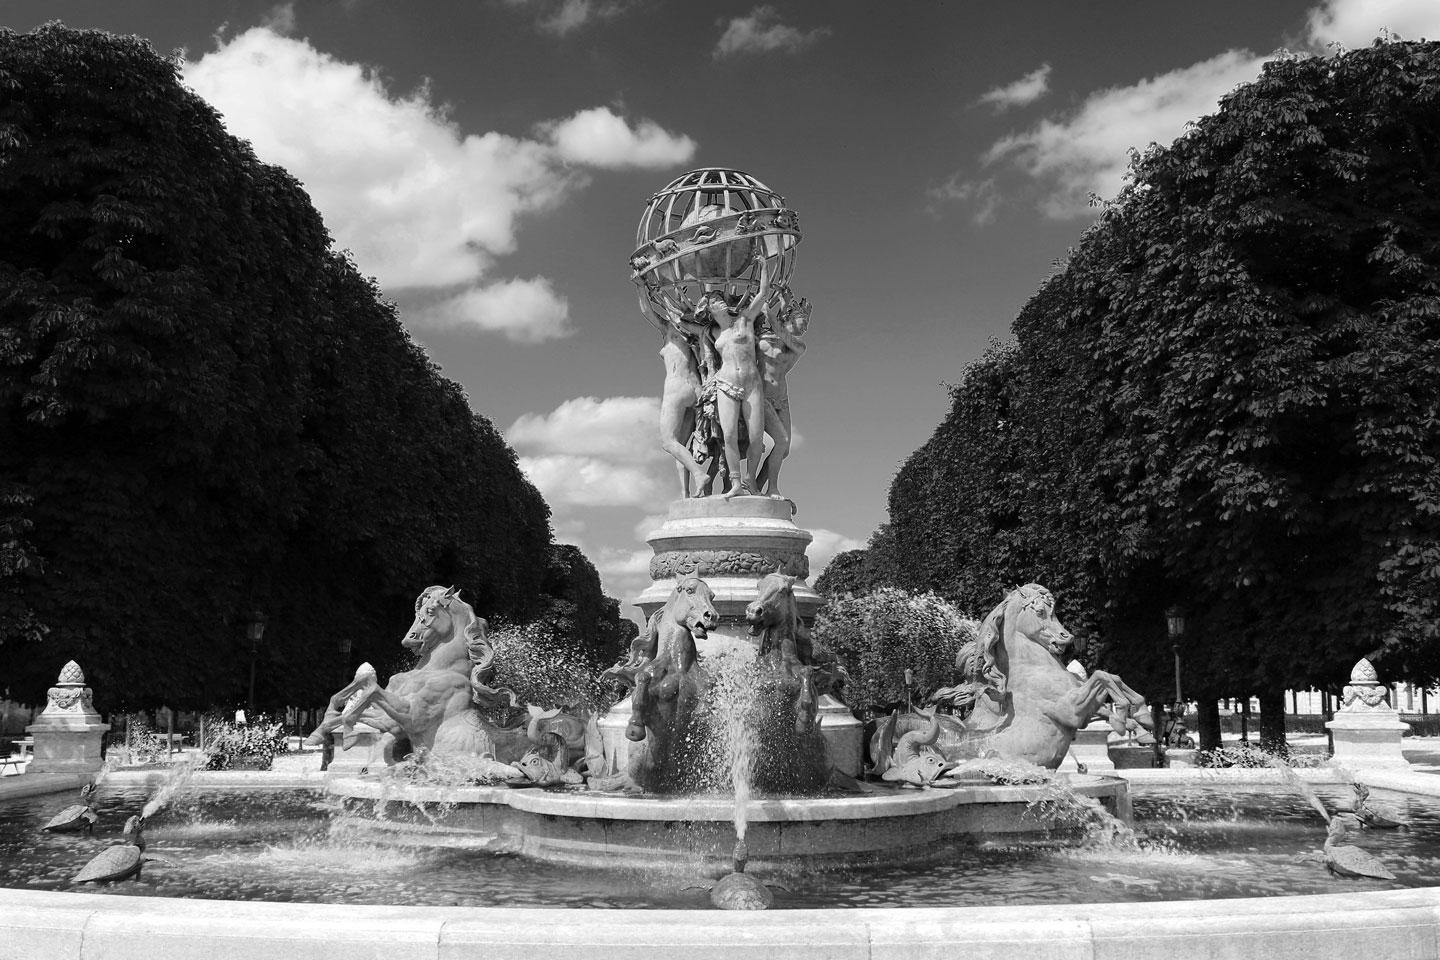 French Photographer Landscape Photography Jardin du Luxembourg Fountain